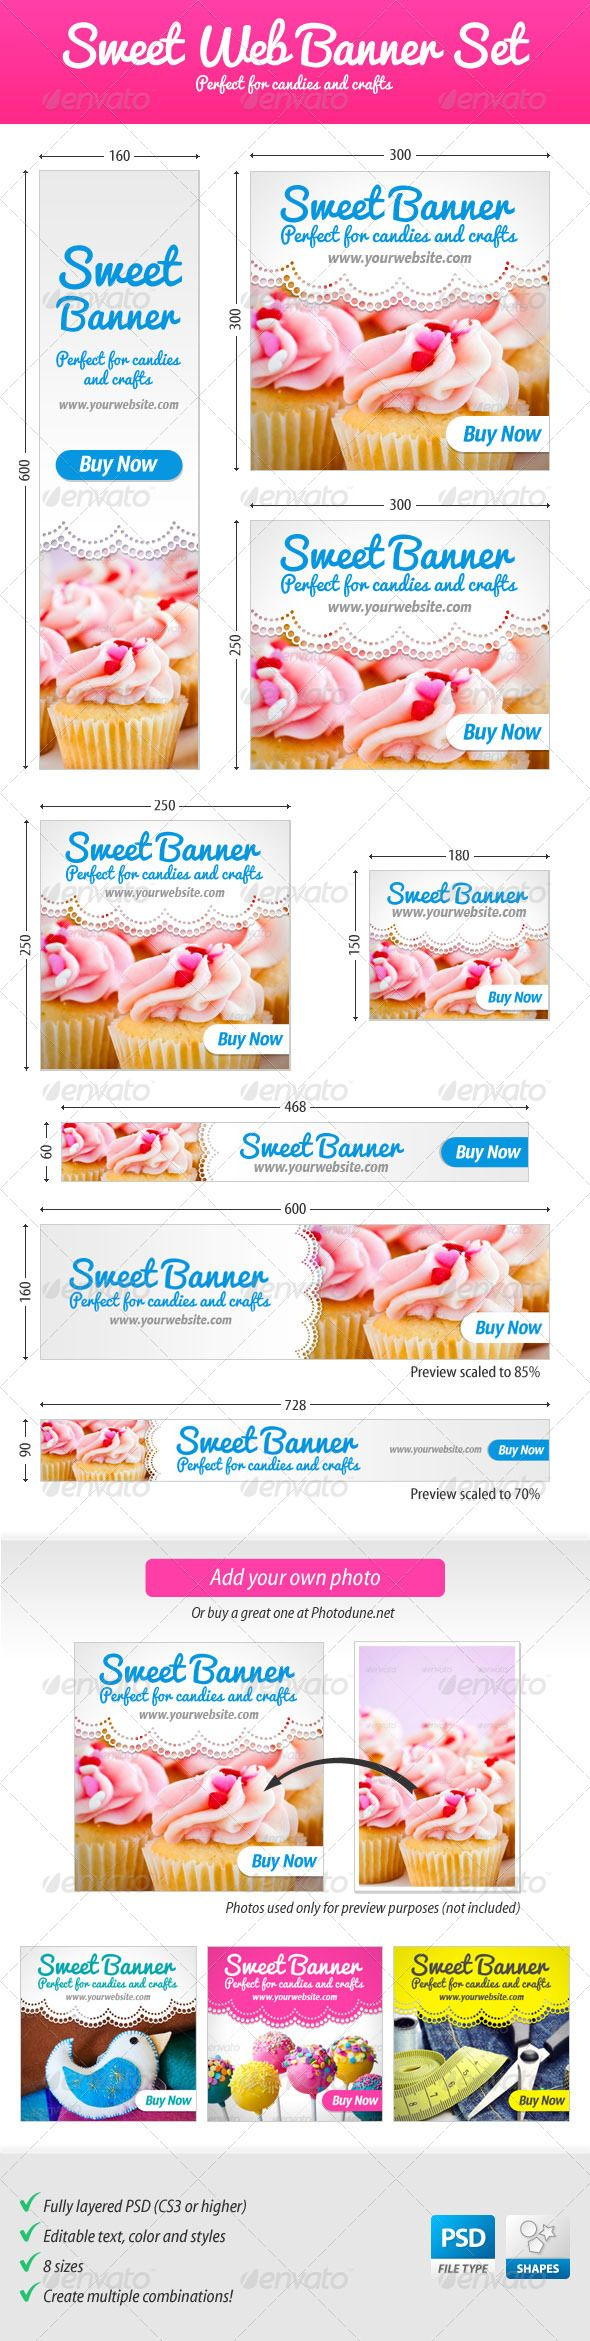 Design google banner ads - Sweet Web Banner Set Template Psd Download Here Http Graphicriver